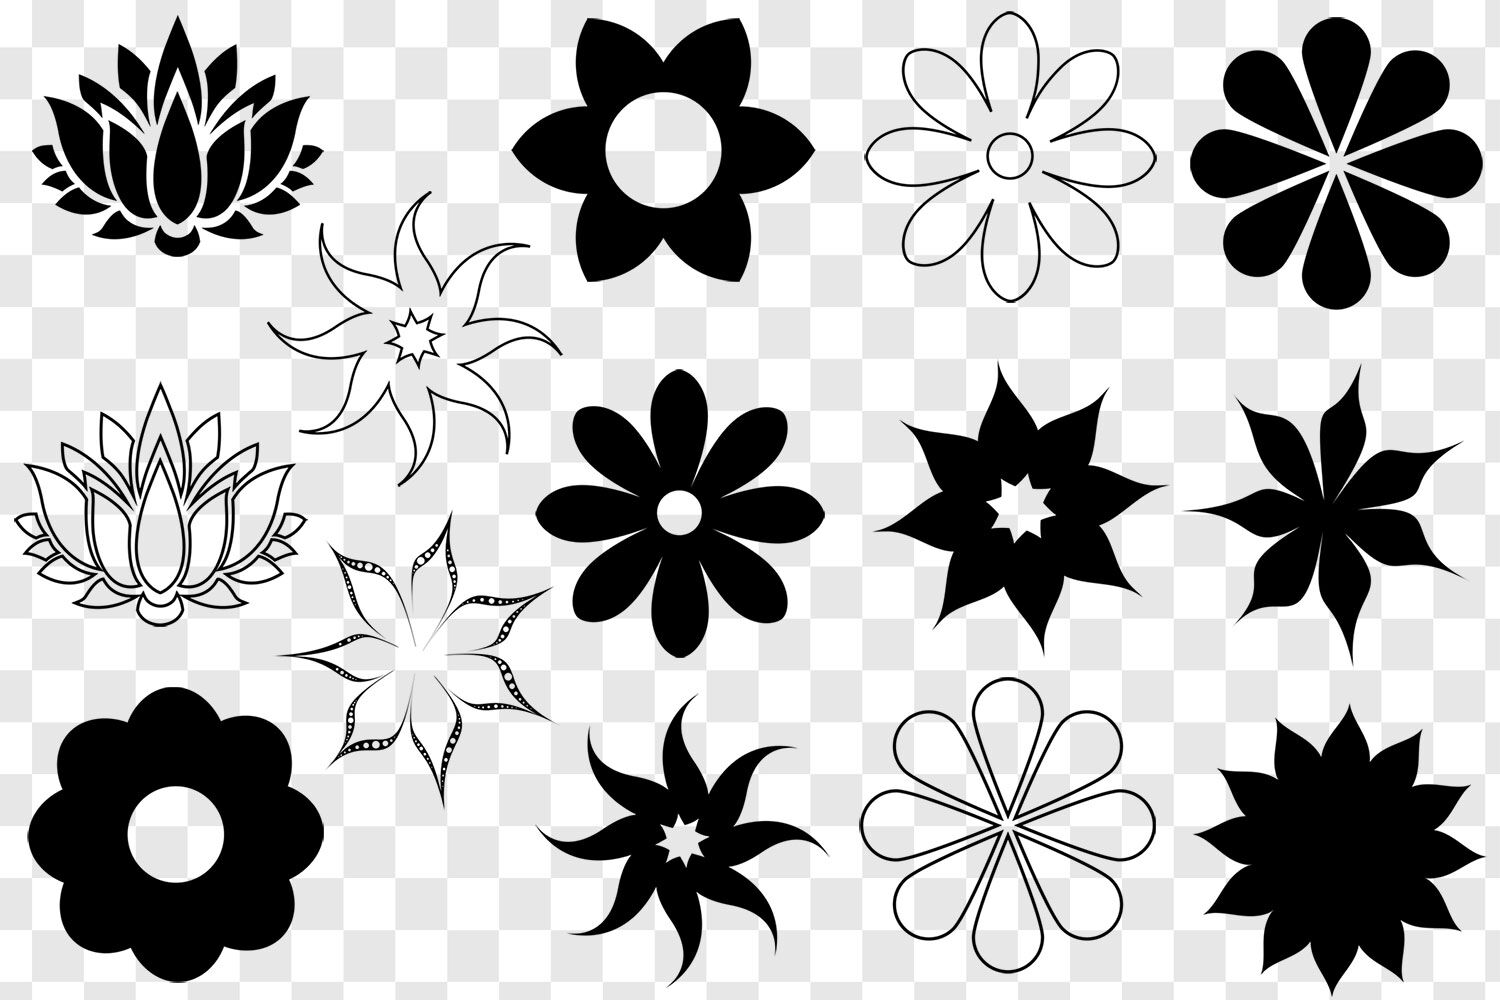 Flower Svg Bundle Flower Clip Art Flower Silhouette Cut Files